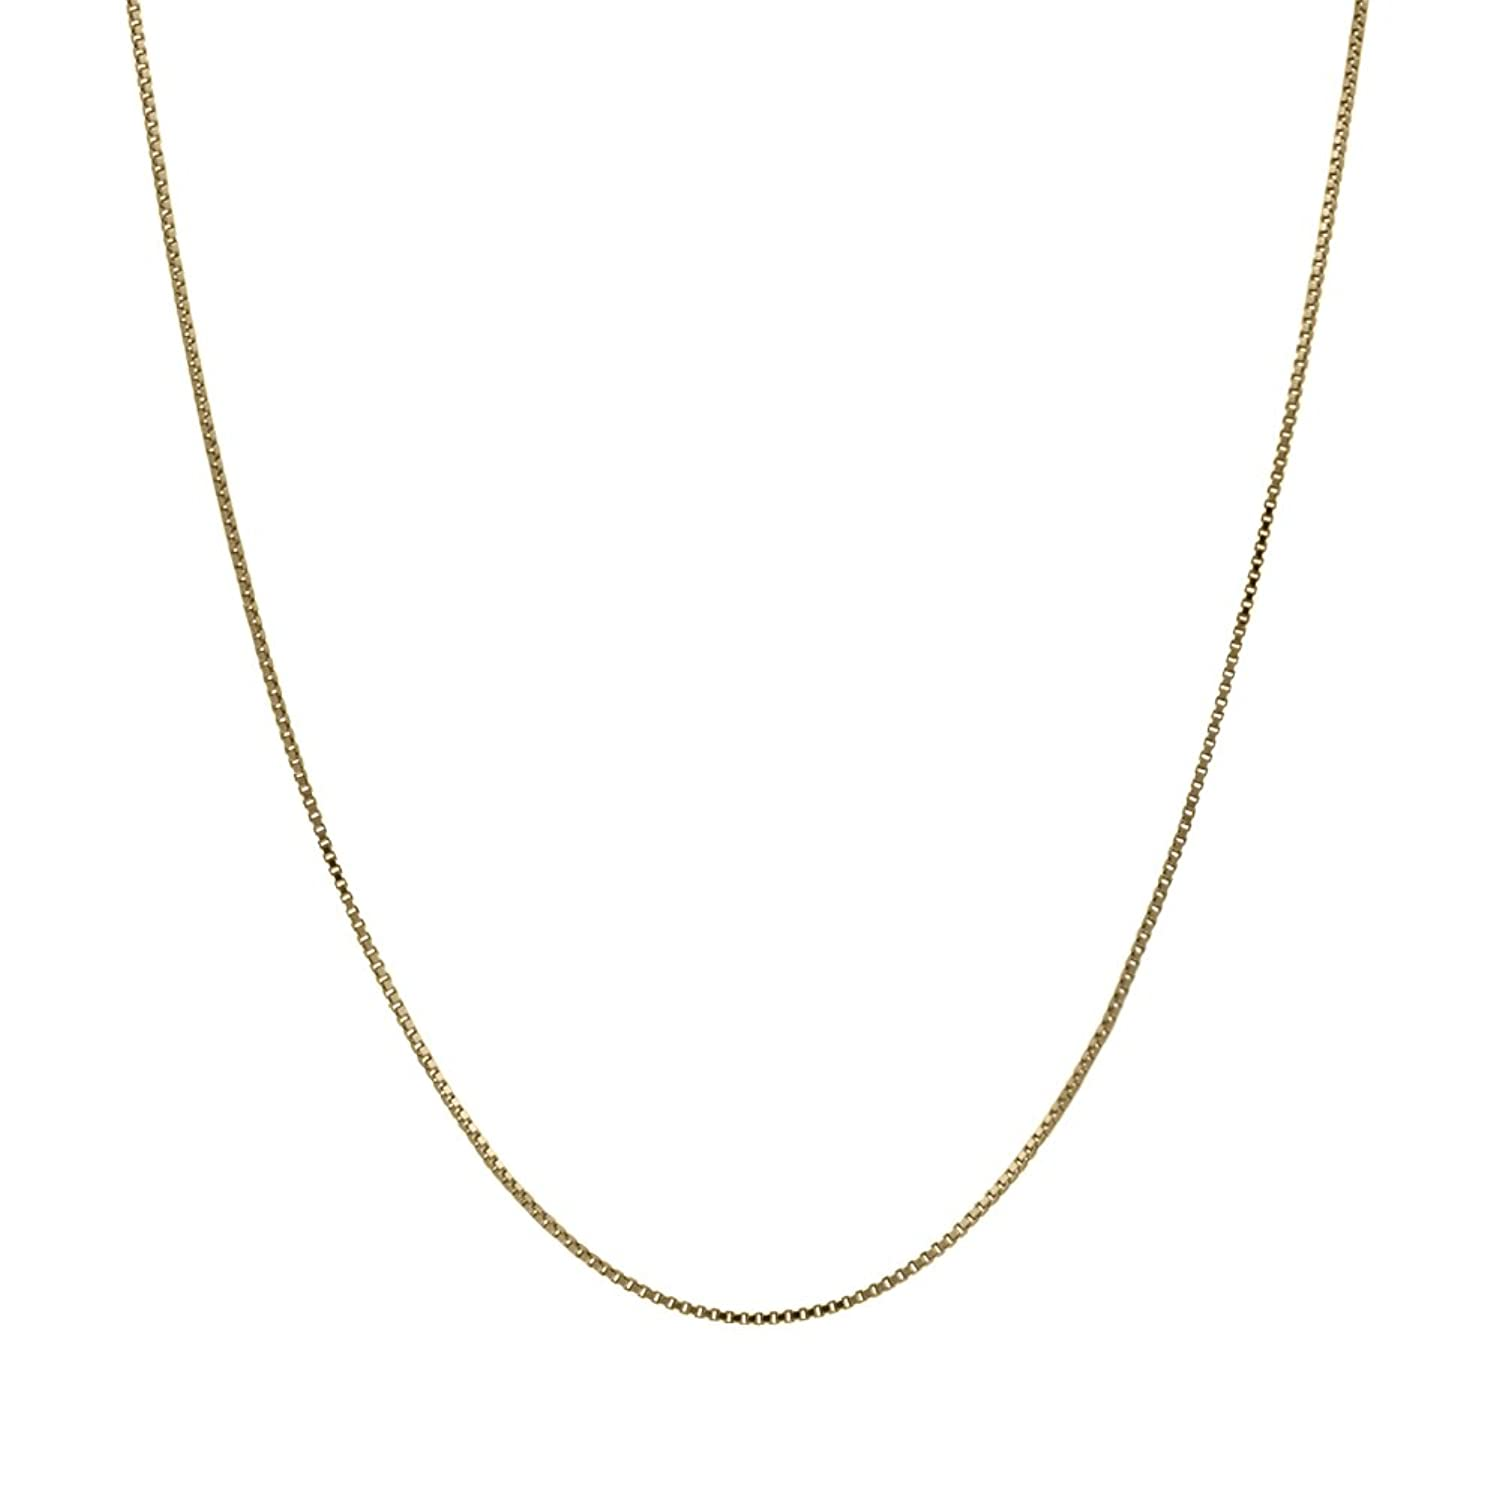 CAM Jewelry Chain Chant Wrap Necklace in Metallic Gold we4J20WRz